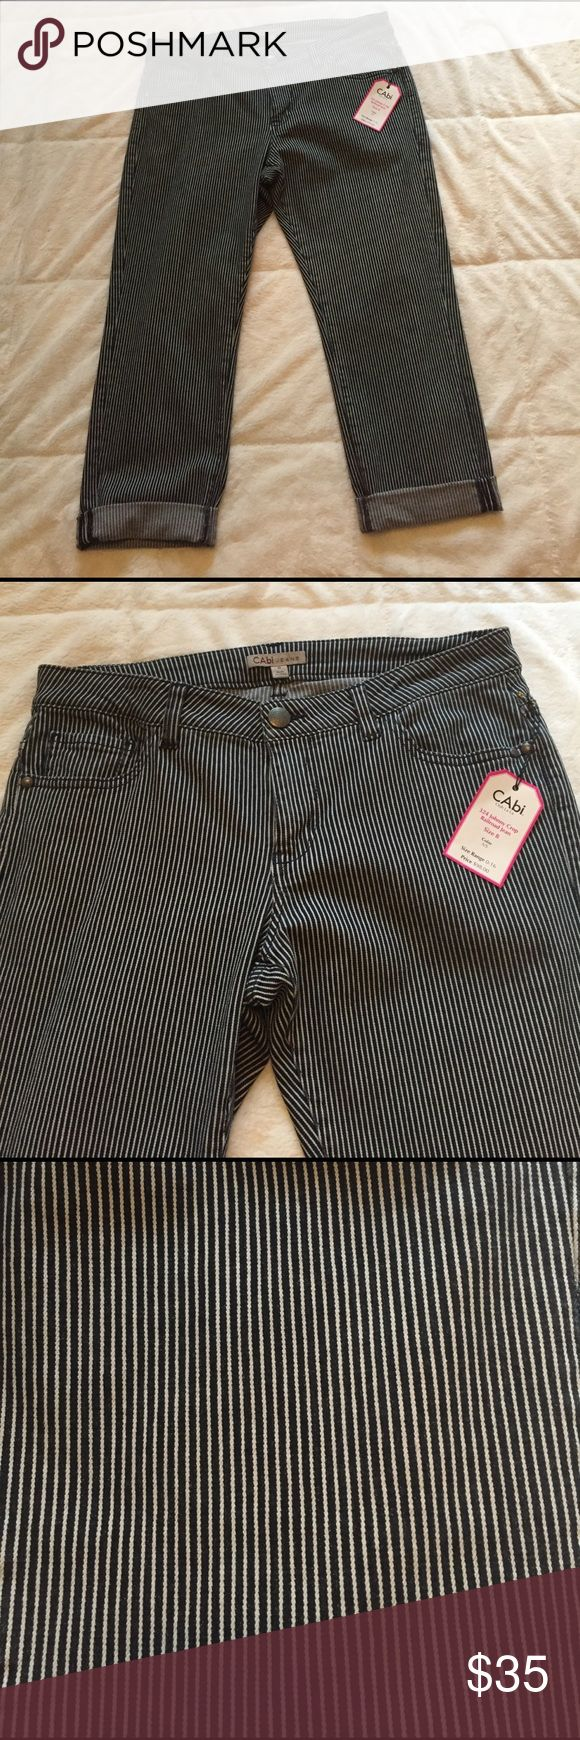 """CAbi Johnny Crop Railroad Jean CAbi Johnny Crop Railroad Jean, 98% Cotton 2% Spandex,  5 pocket style, shown double rolled and unrolled, 16 1/2"""" waist, 9 1/2"""" rise, 25 1/2"""" inseam uncuffed, 34"""" length uncuffed. NWT from smoke free home. CAbi Jeans Ankle & Cropped"""